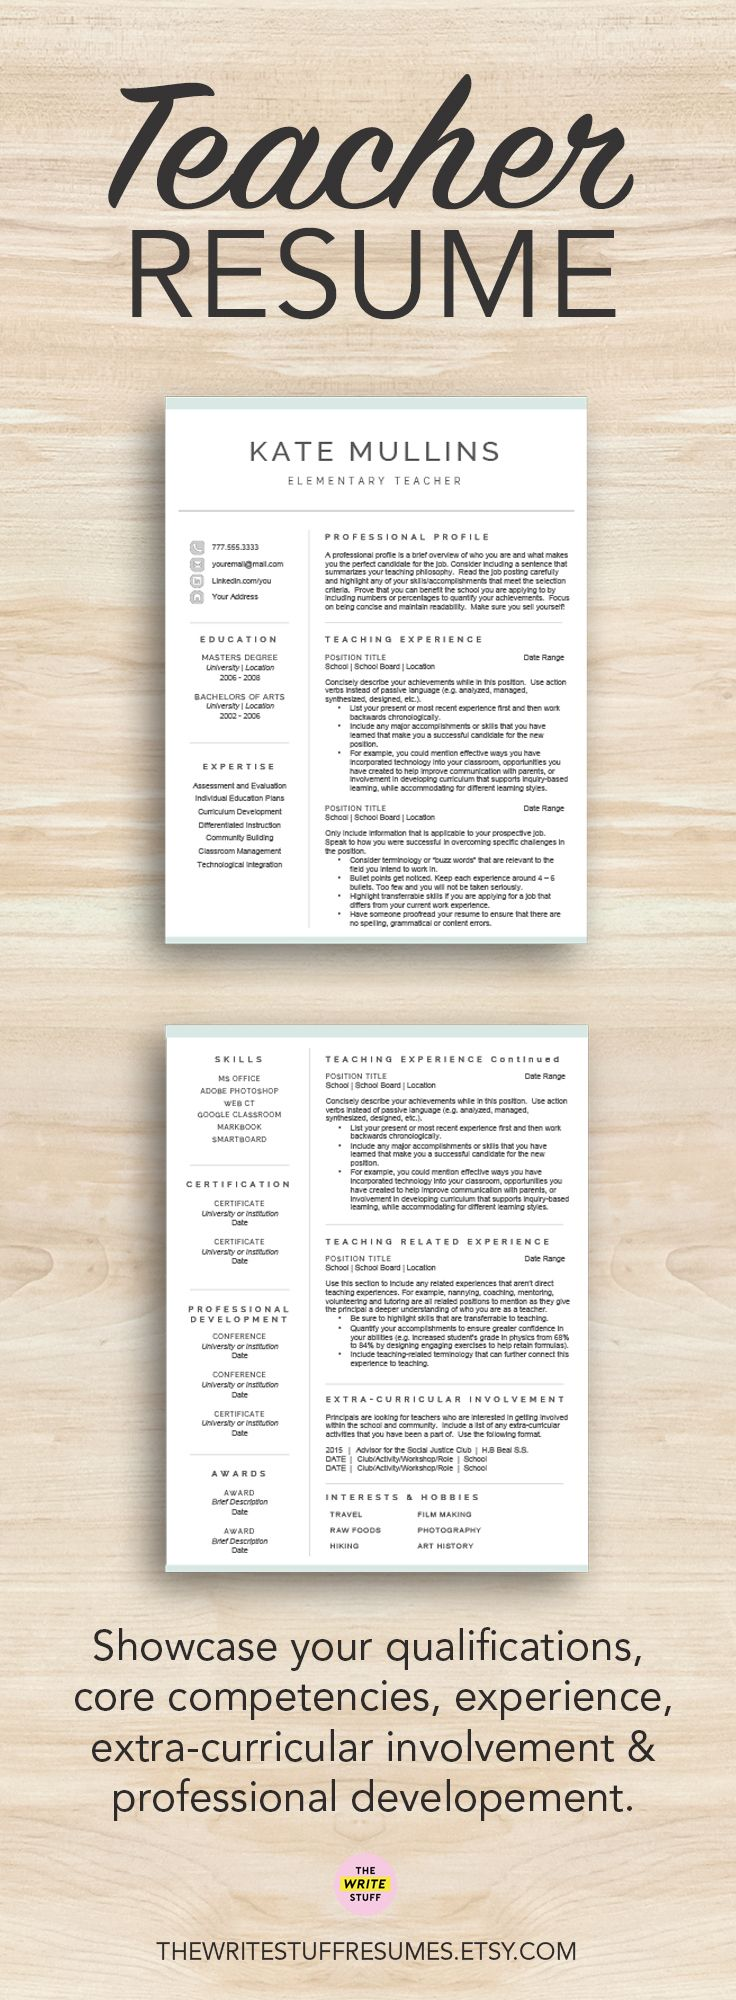 A resume designed for teachers and educators | teacher resume | educator resume | teacher resume tips | curriculum vitae